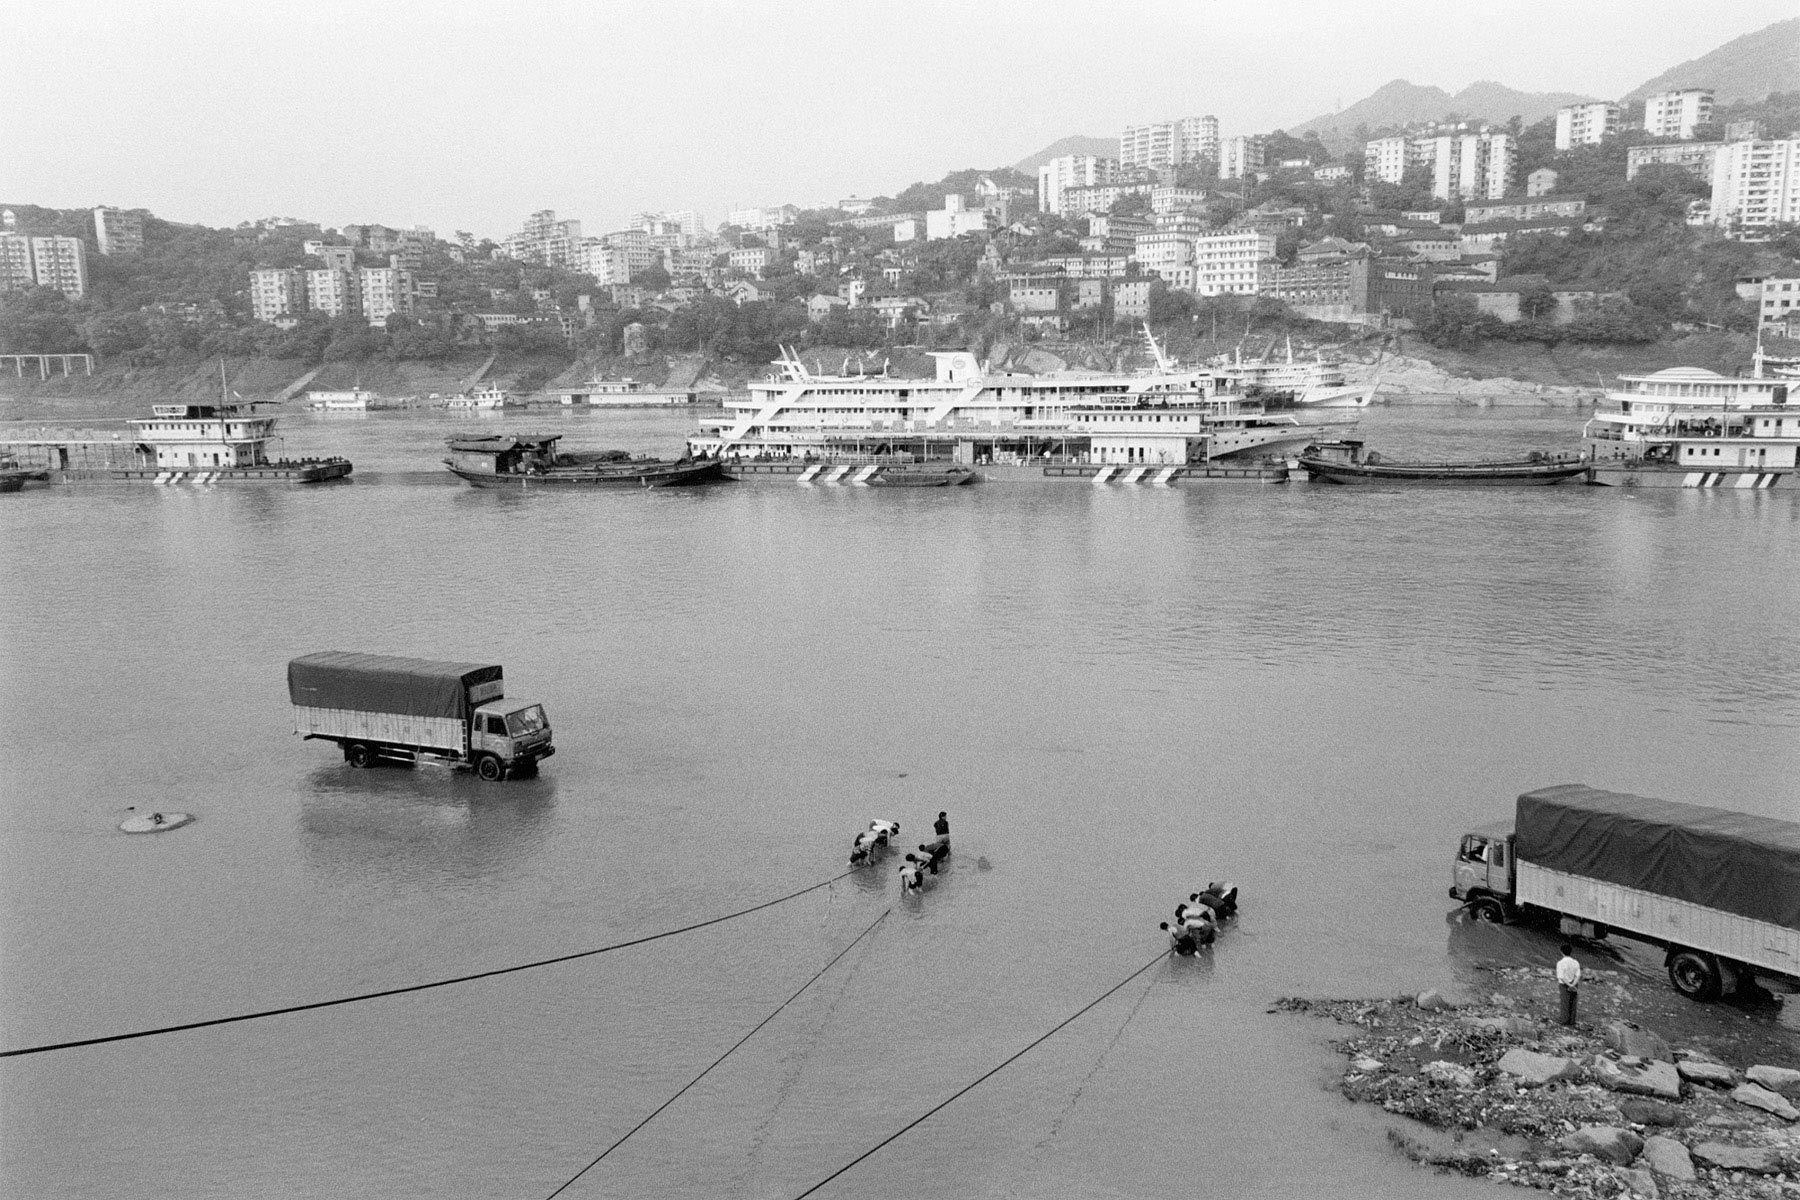 Flooding, Chongqing, China 1999